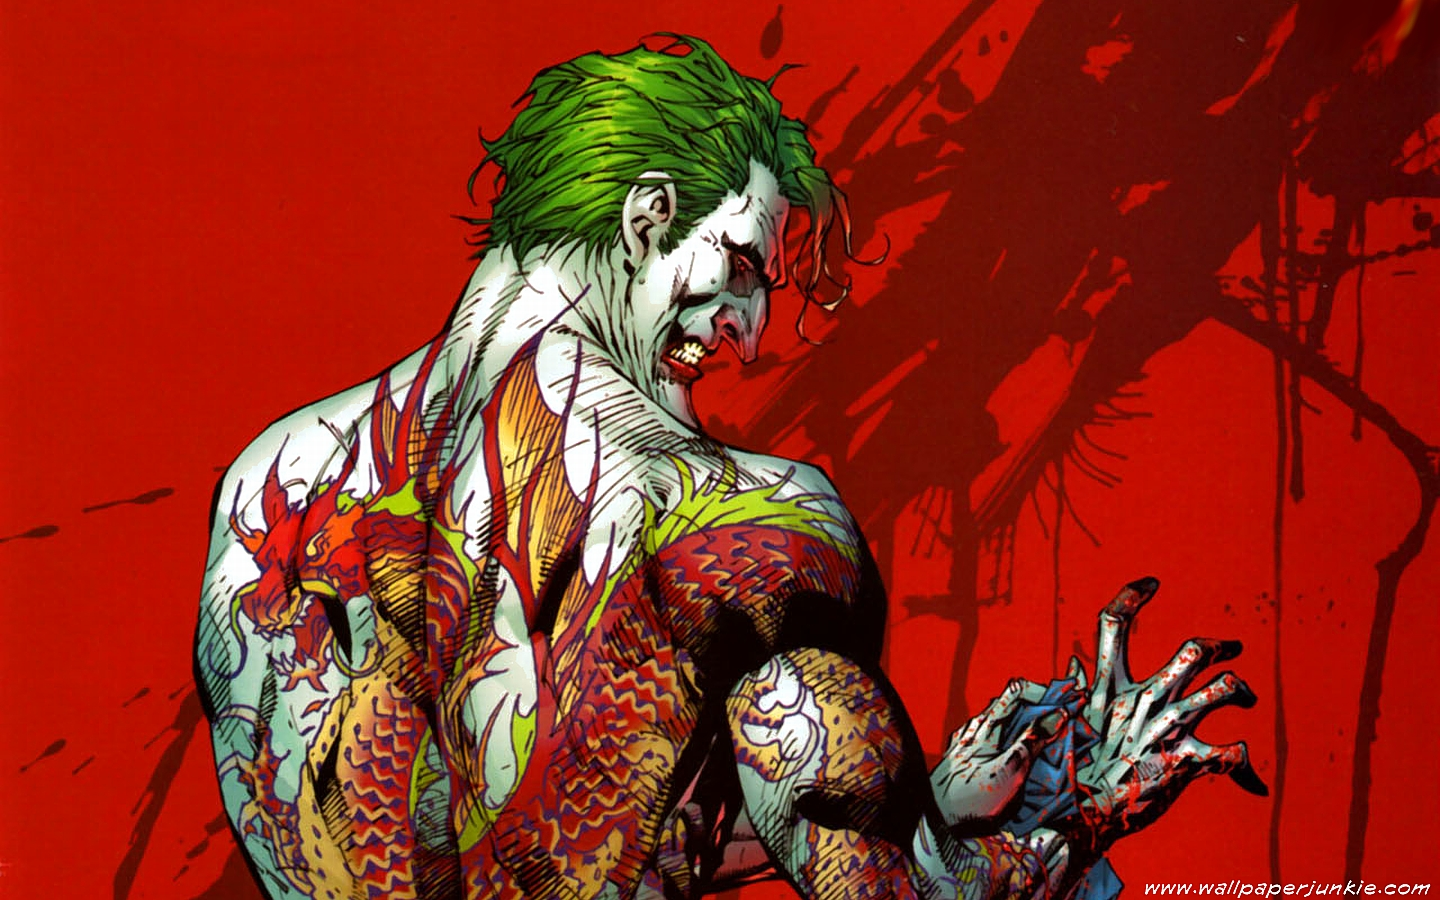 Joker Wallpaper Wallpaper 1440x900 Joker Wallpaper 1440x900